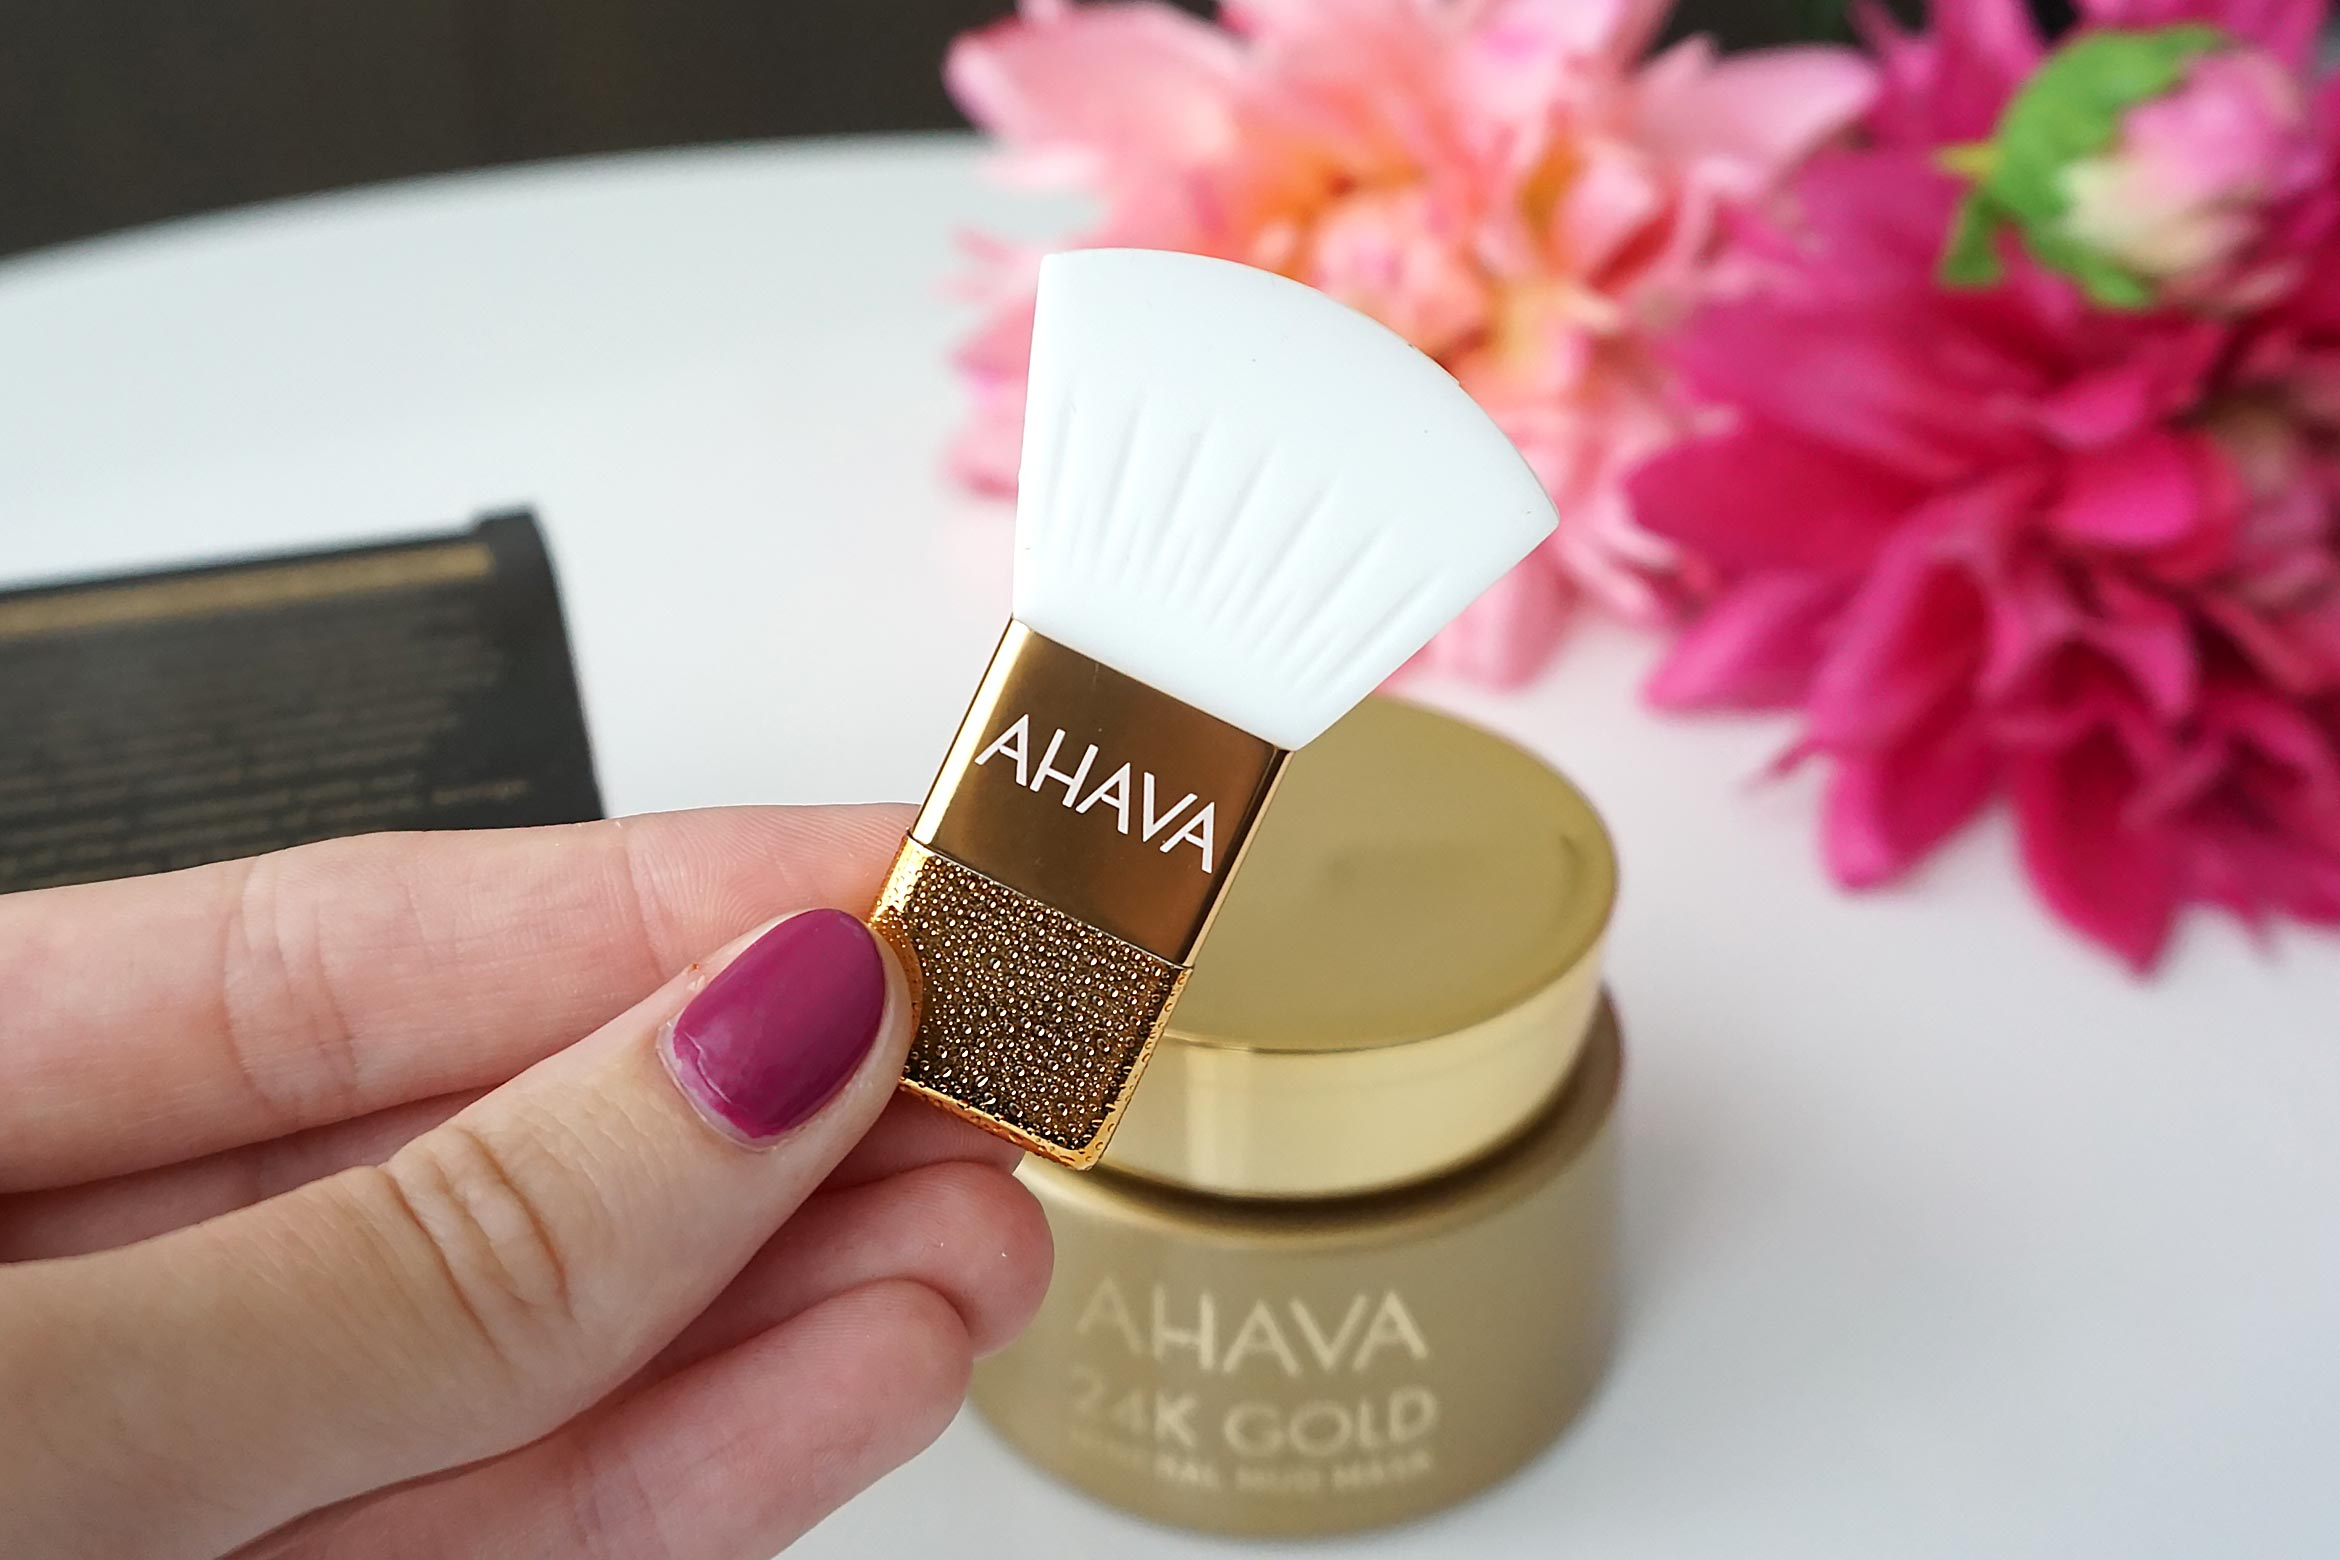 Ahava-24k-gold-mineral-mud-mask-review-3